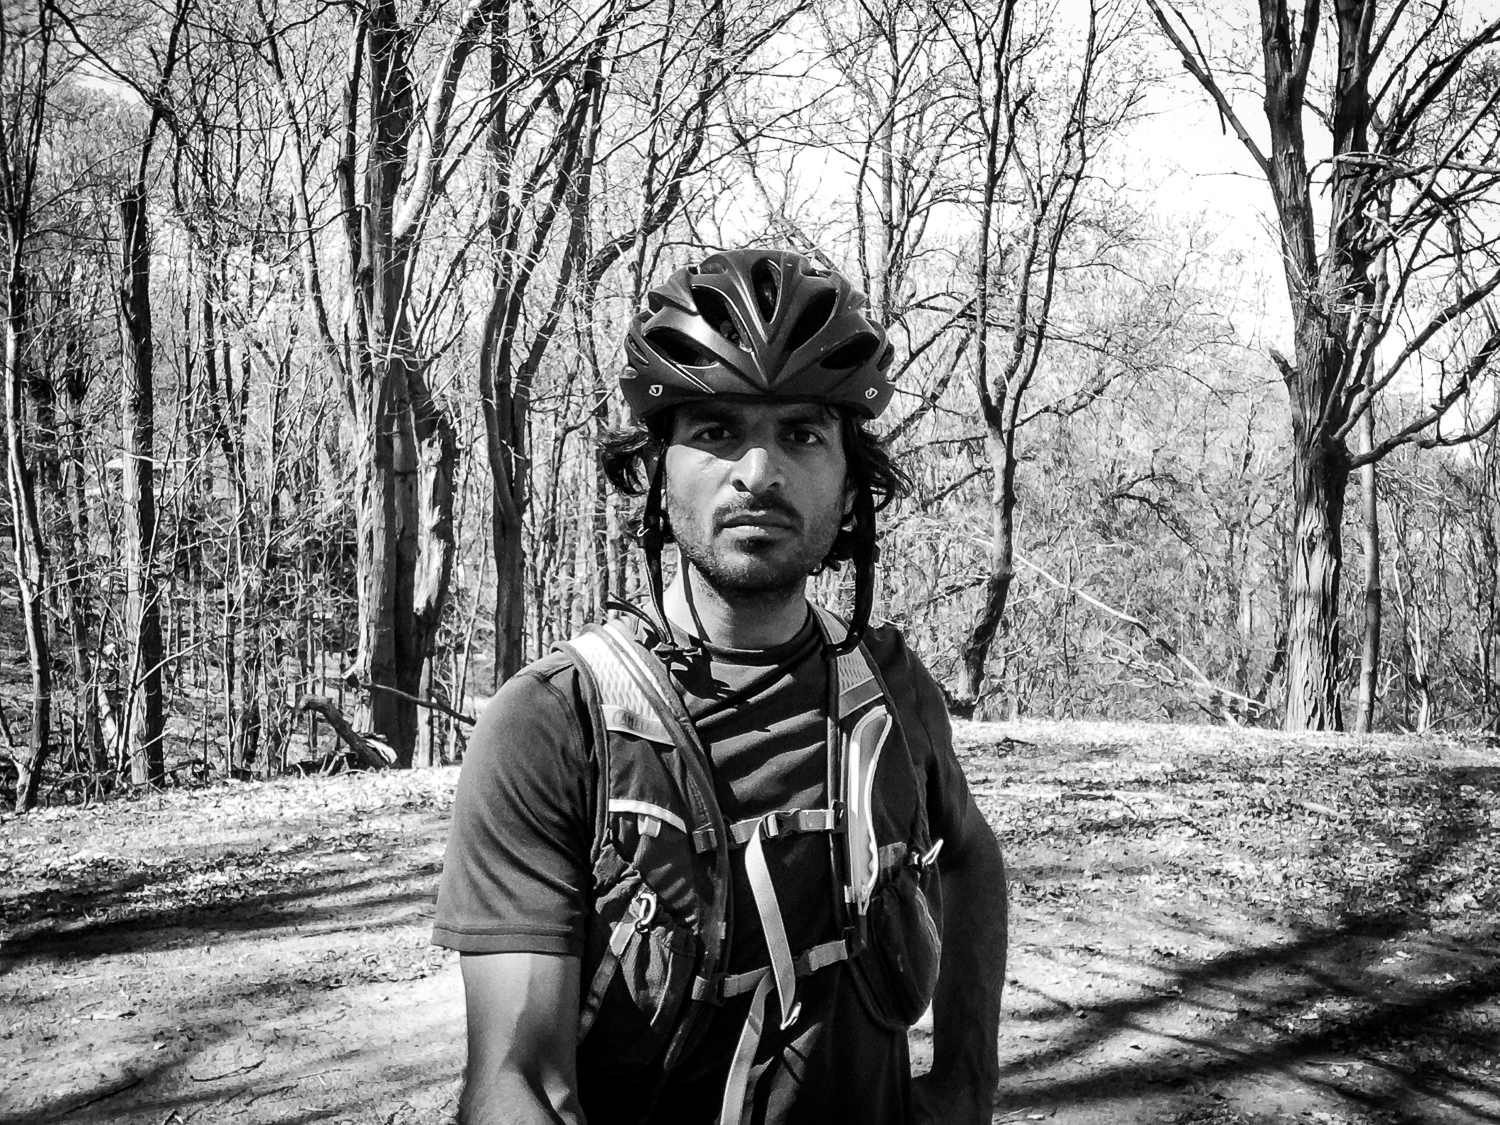 paperspace.ink_bicycletour_erie-canal-trail-3.jpg